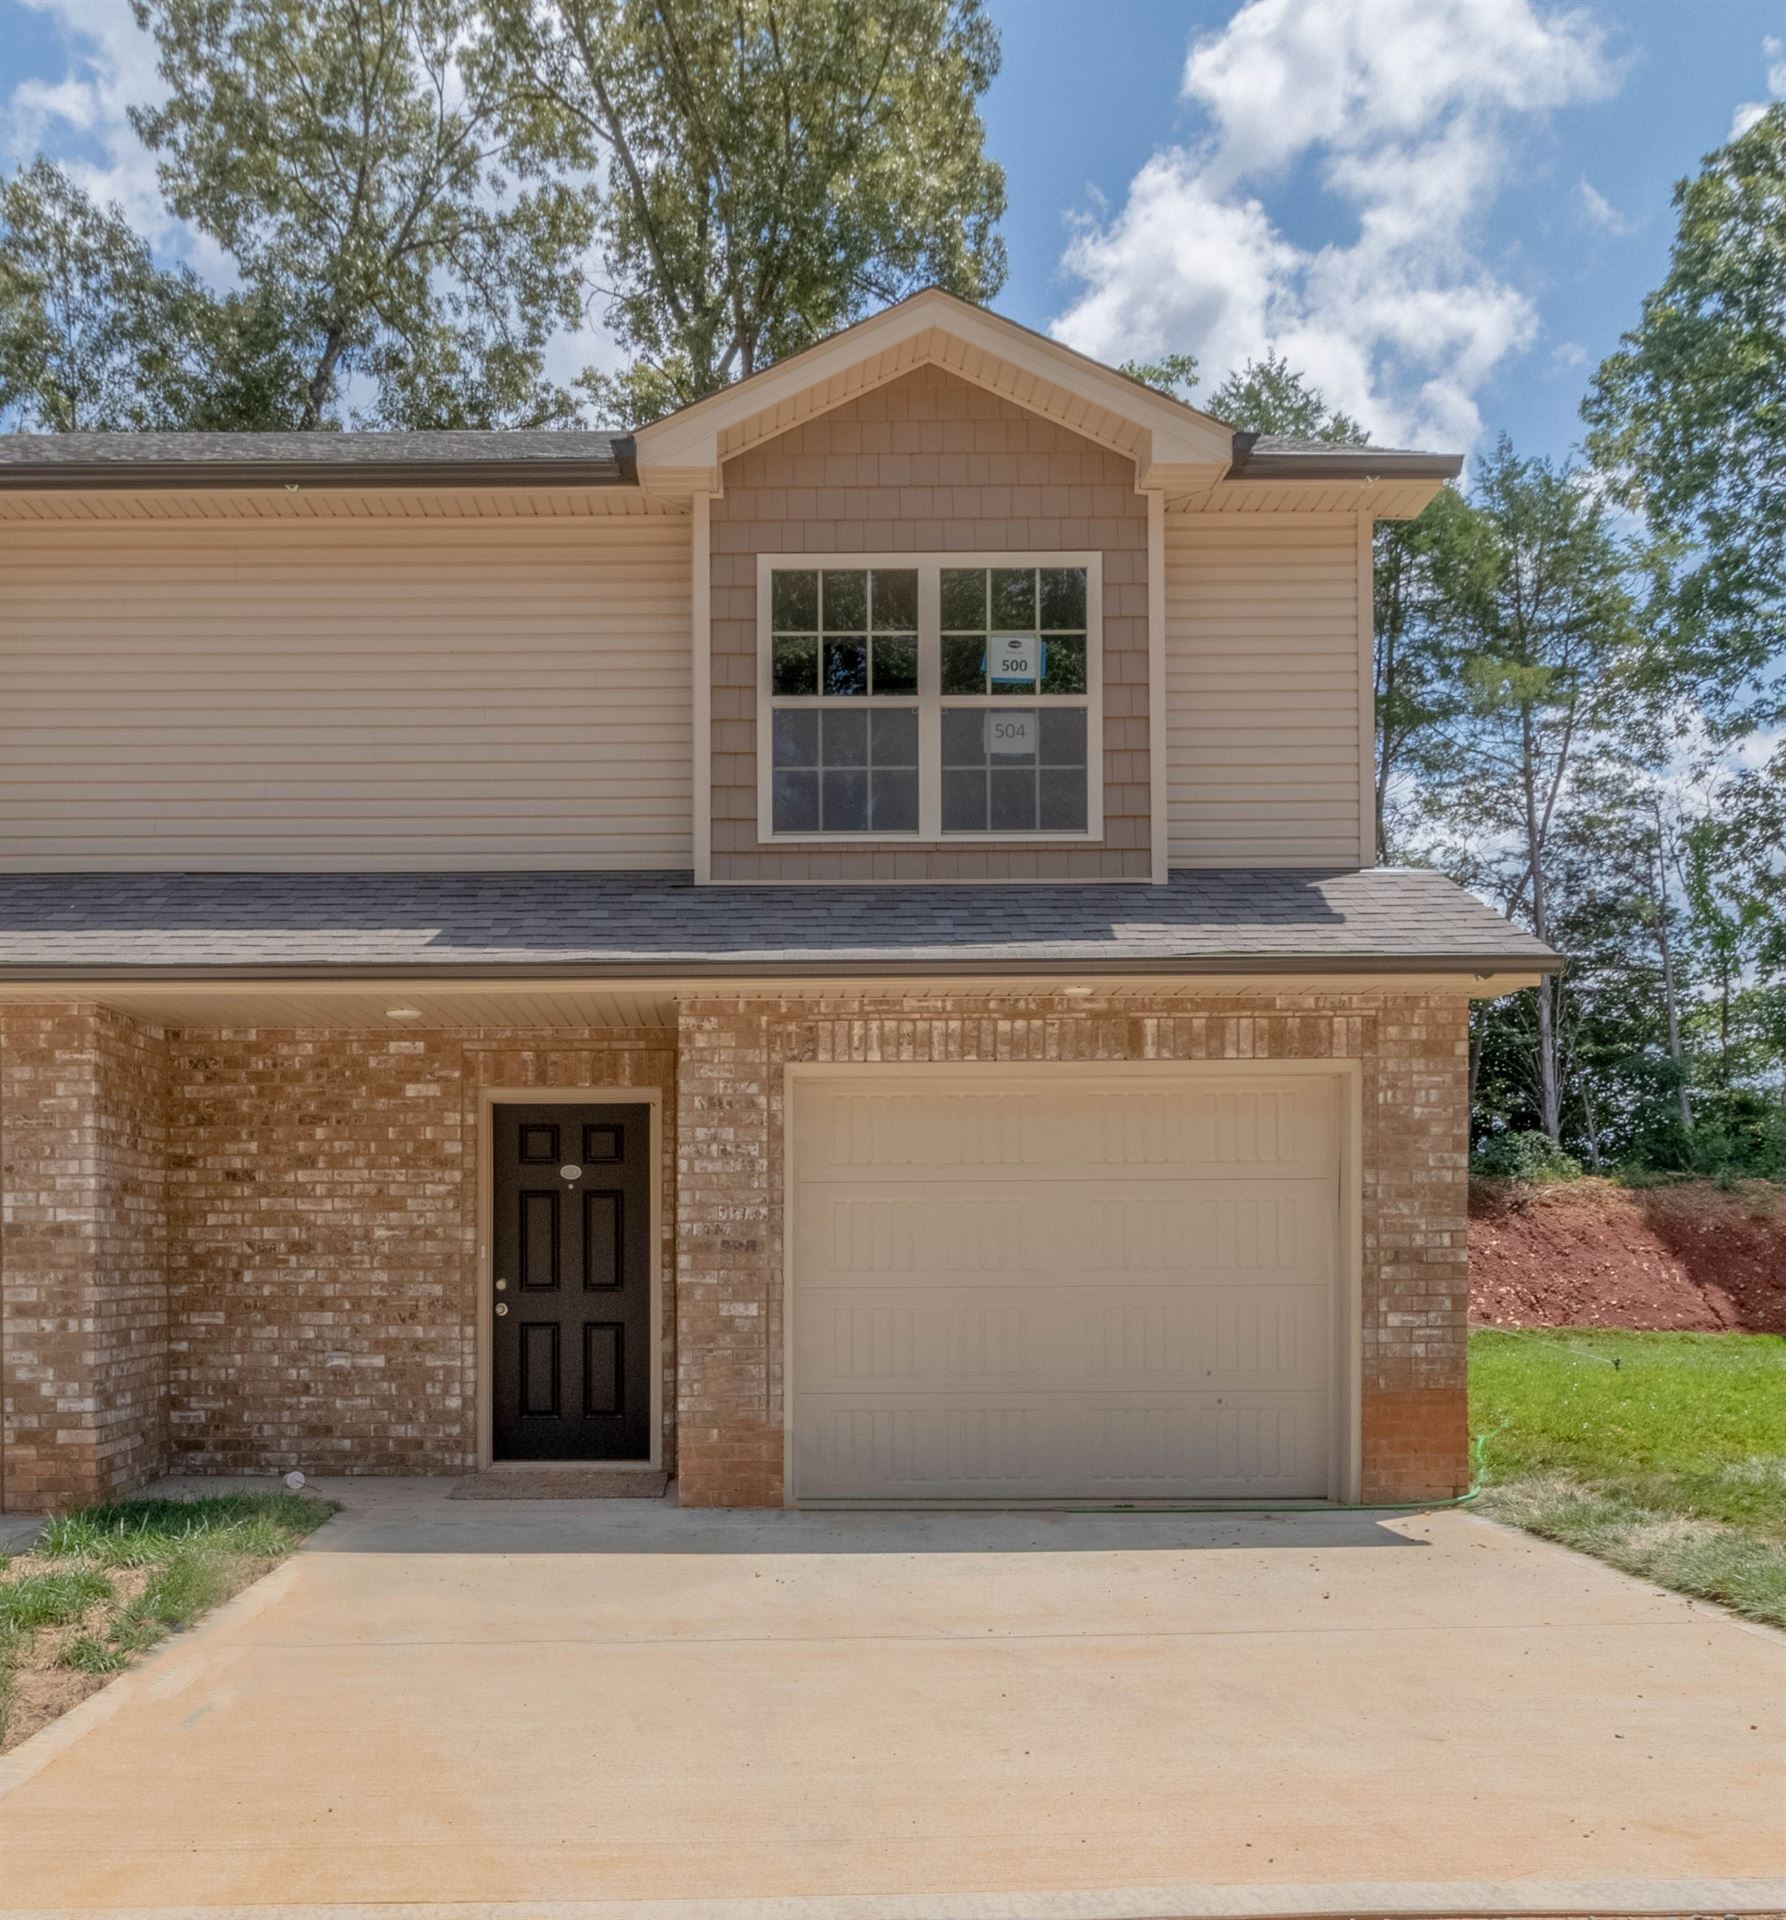 Photo for 135 Country Lane Unit 504, Clarksville, TN 37043 (MLS # 2176492)